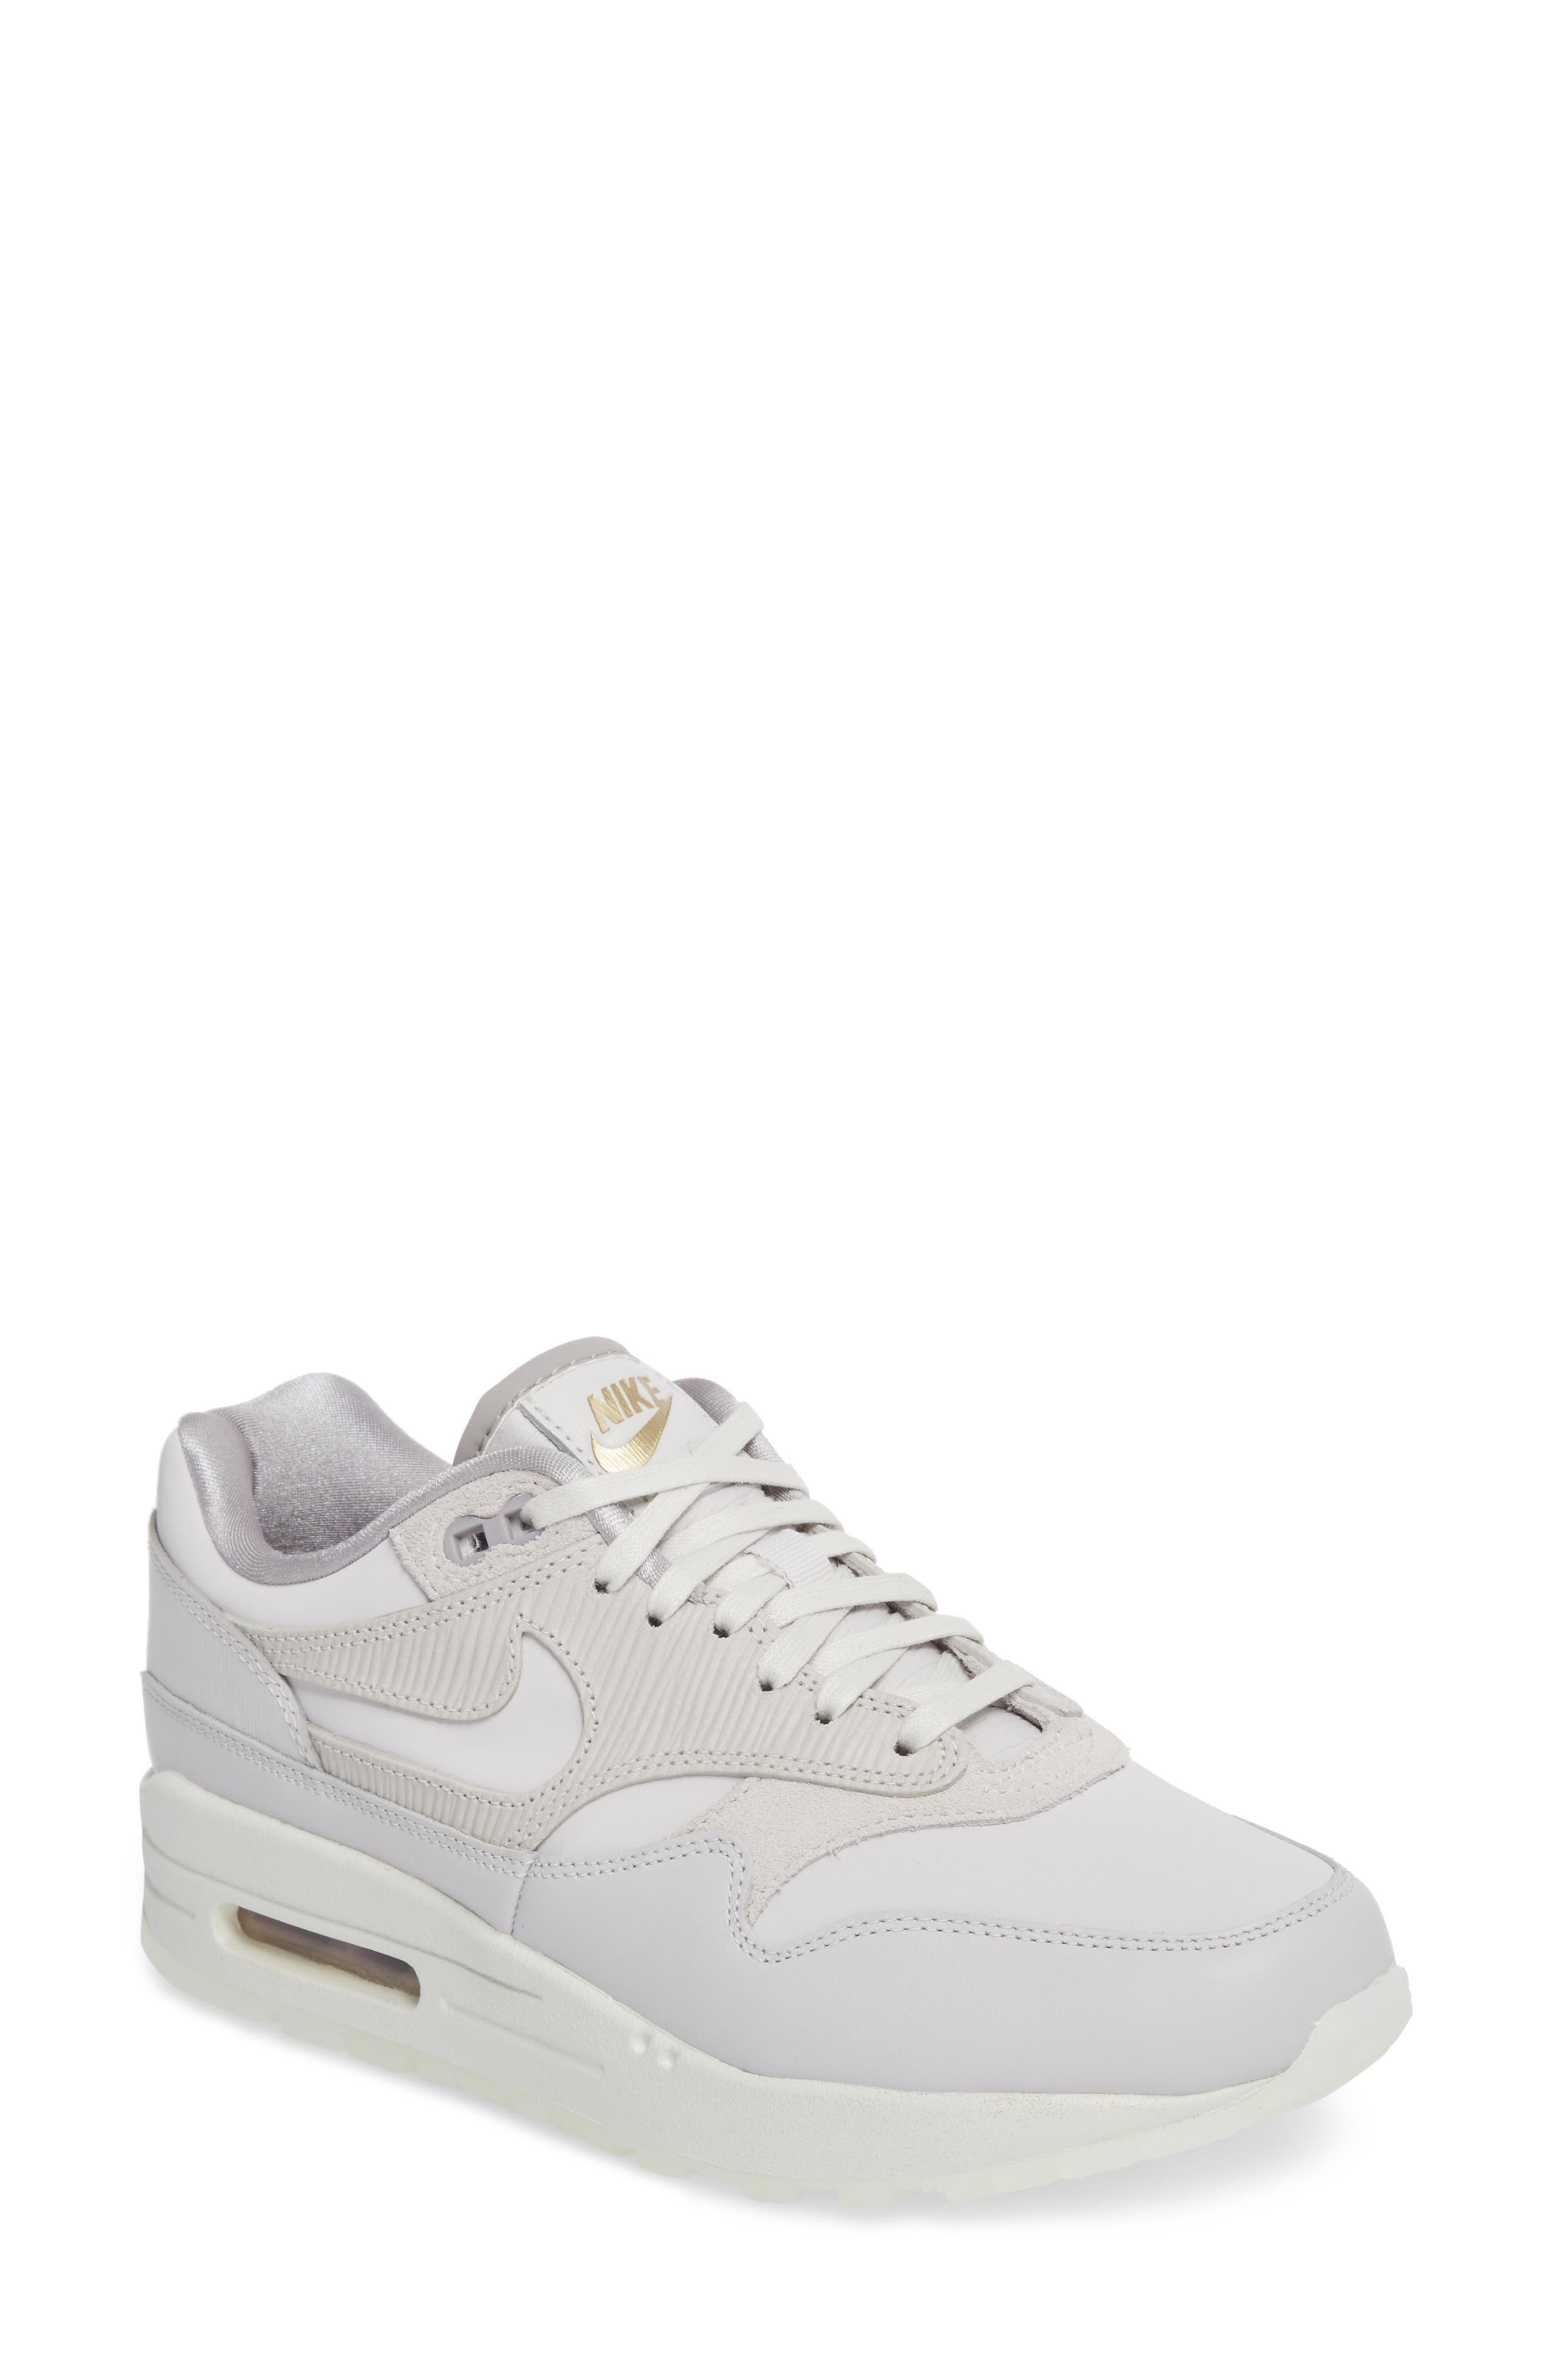 Alternate Image 1 Selected - Nike Air Max 1 Premium Sneaker (Women)